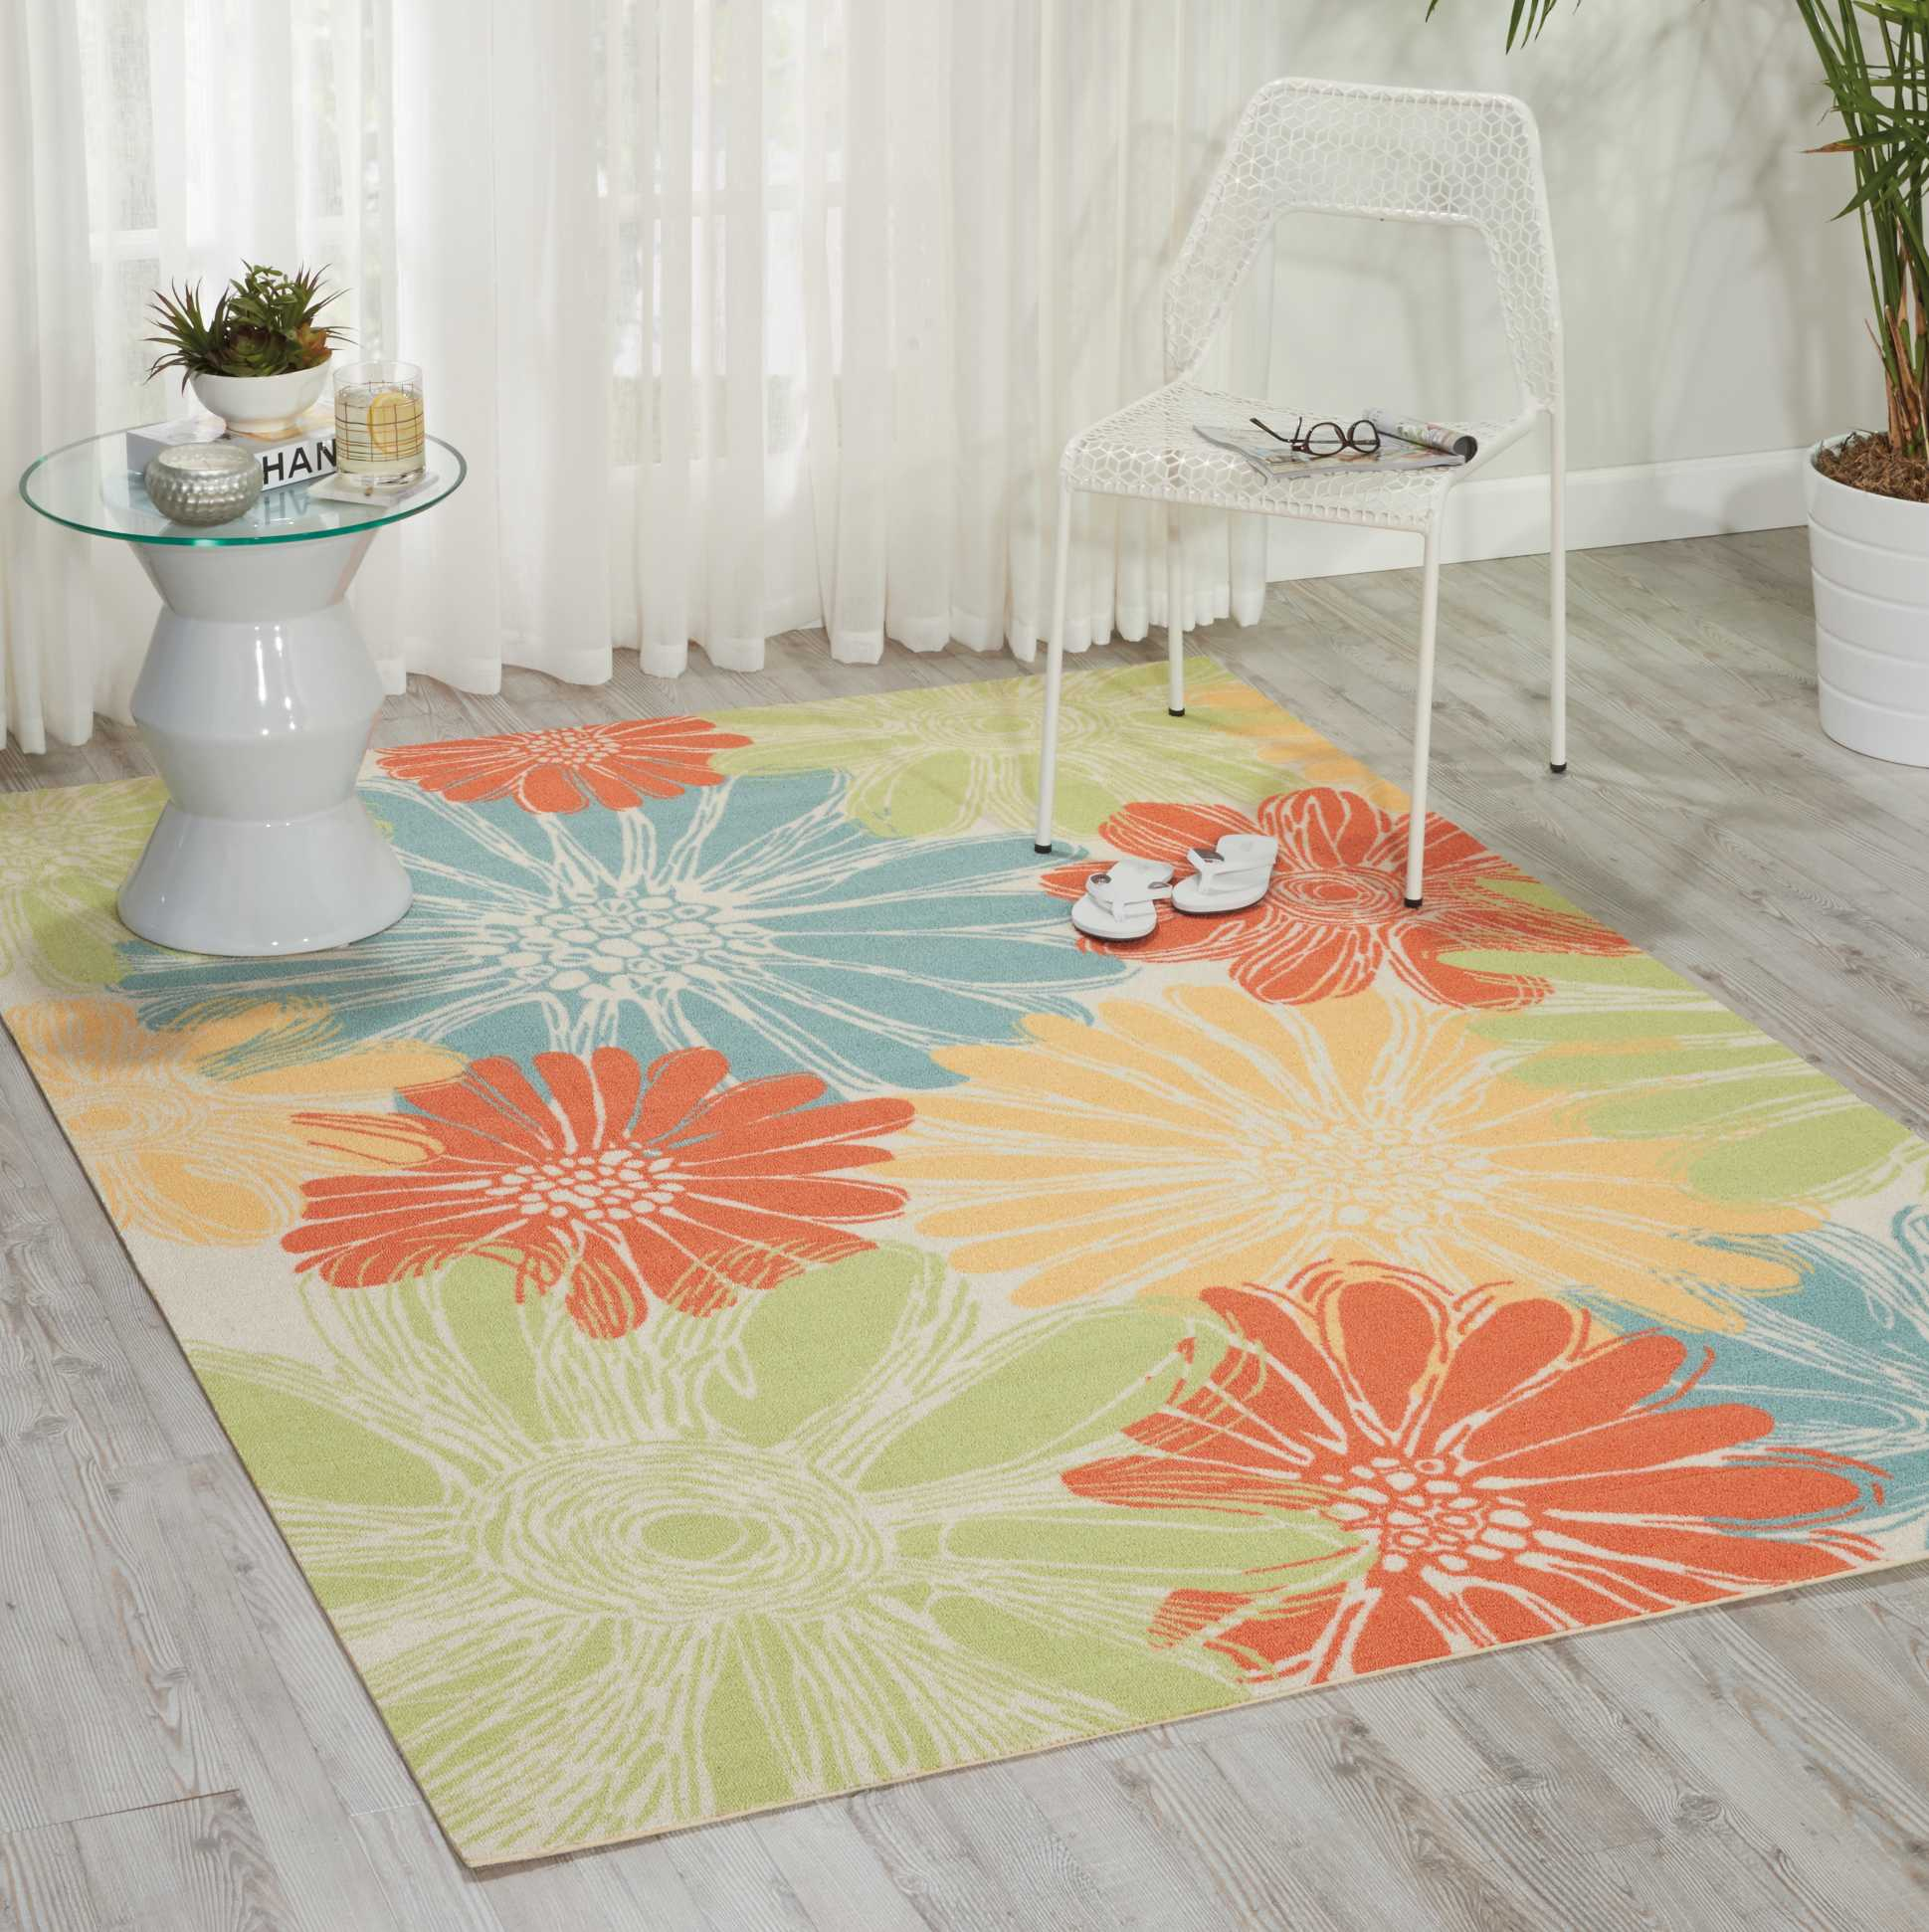 Nourison Home & Garden Ivory Indoor/Outdoor Area Rug